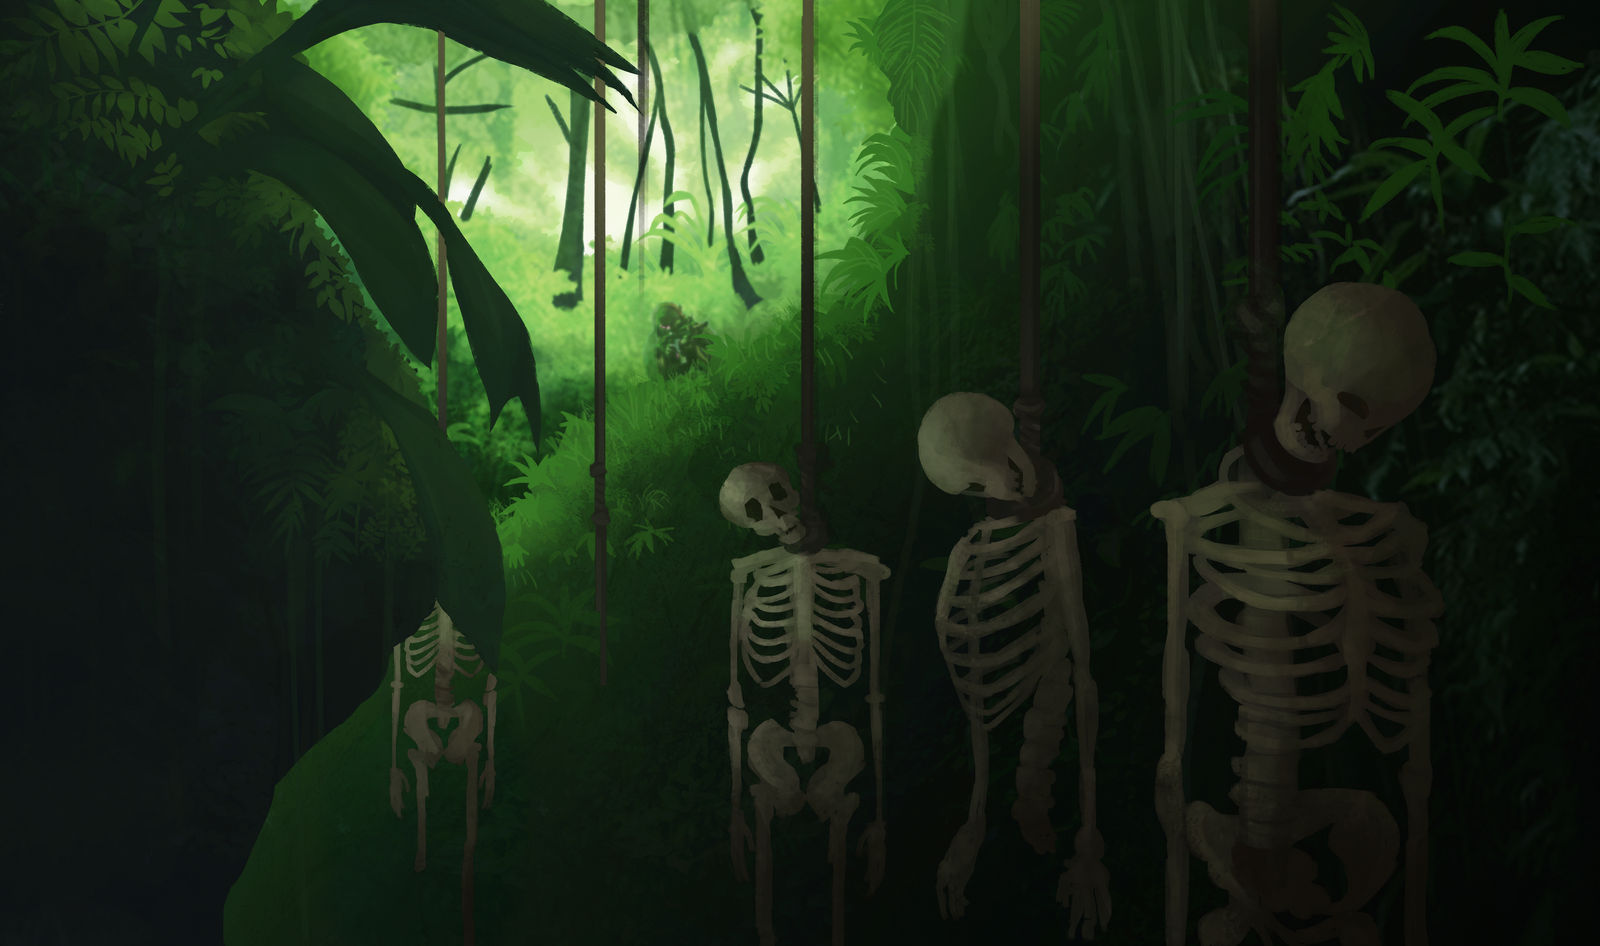 The Grave of Intruders by Sabinaa